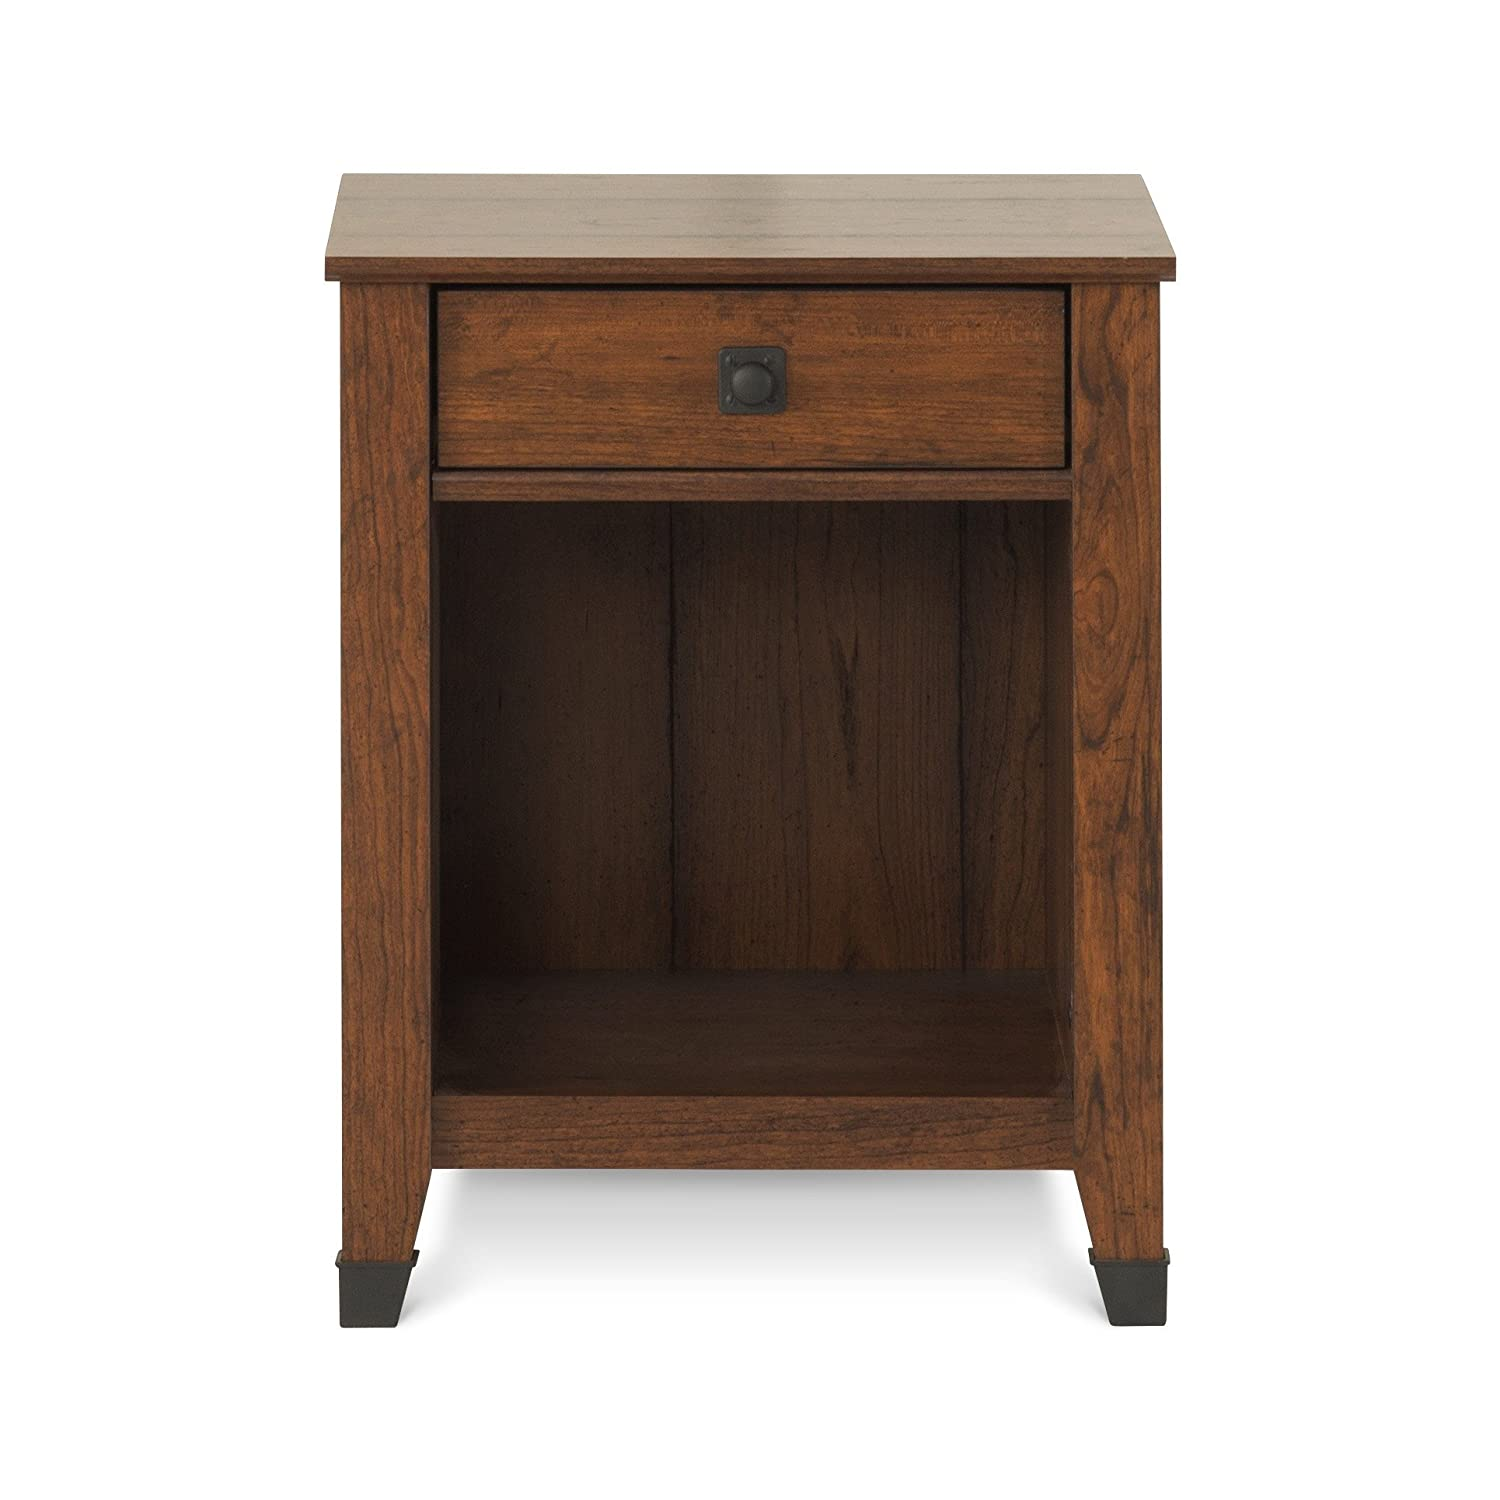 Redmond 1 Drawer Coach Cherry Finish Nightstand with Open Shelf for Additional Storage Child Craft F02828.06